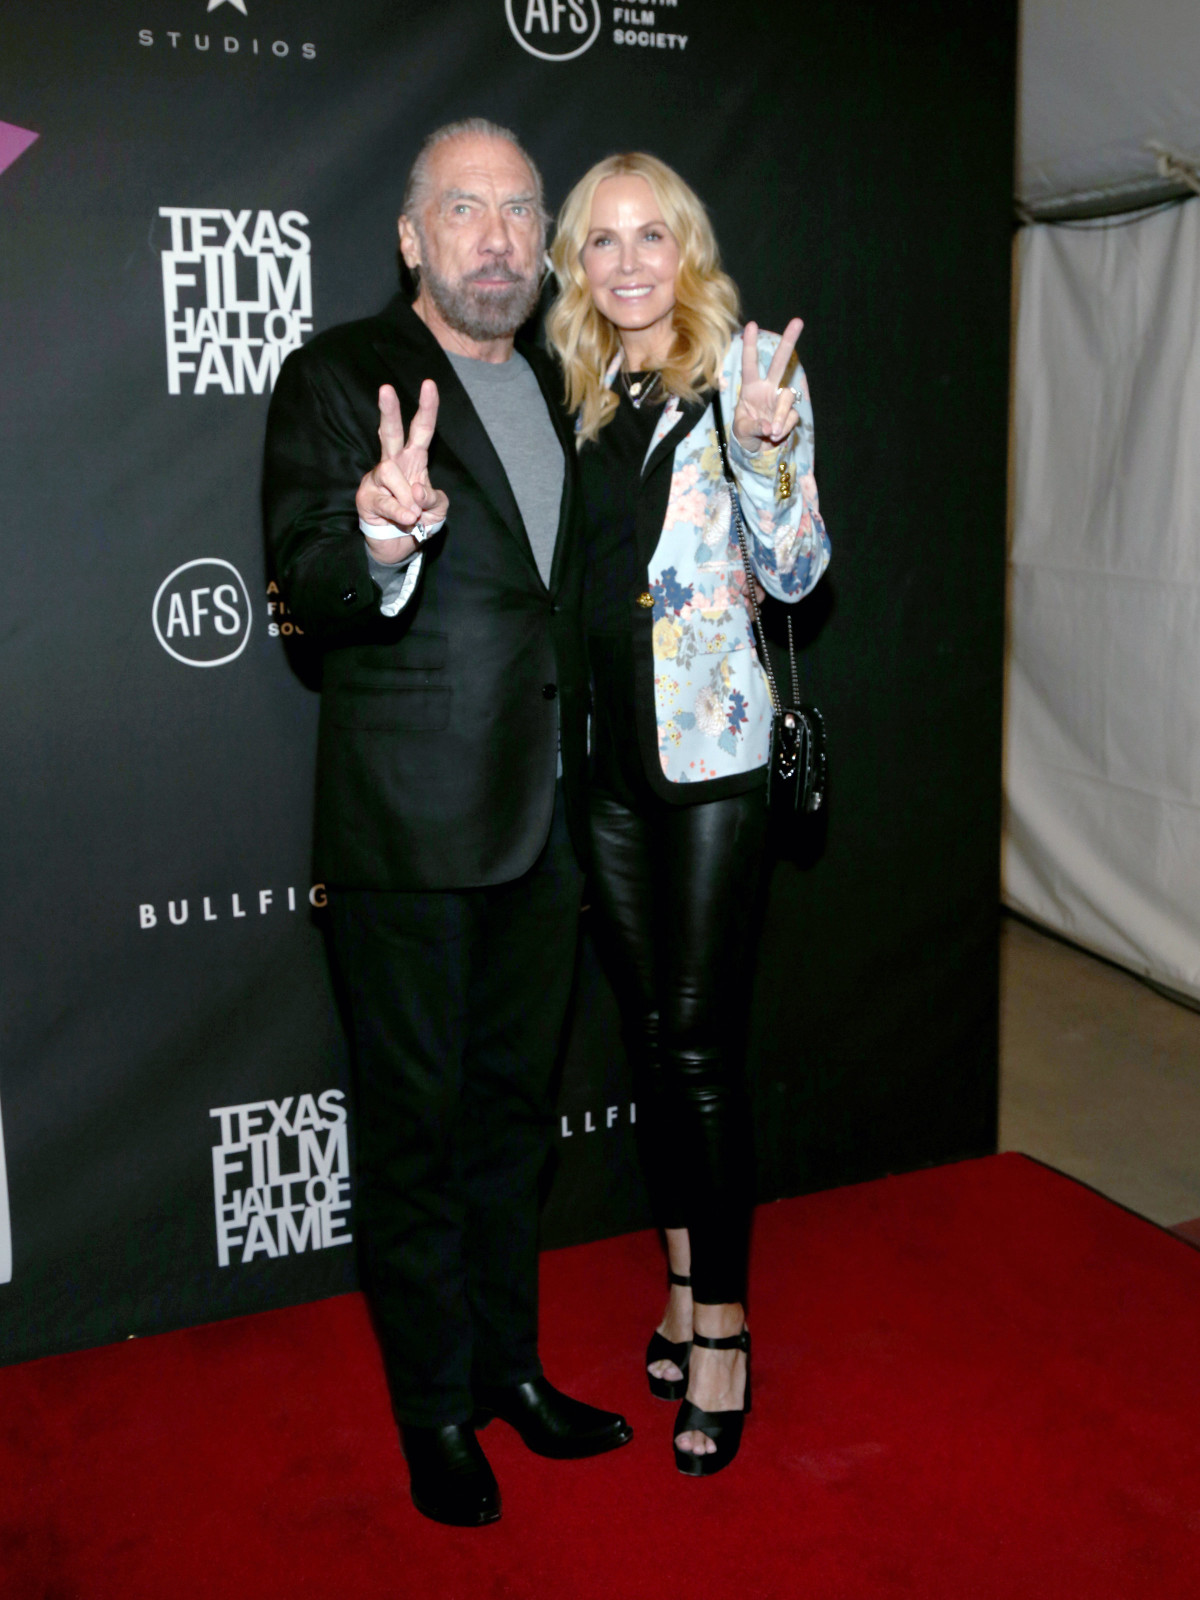 Texas Film Awards john paul dejoria eloise